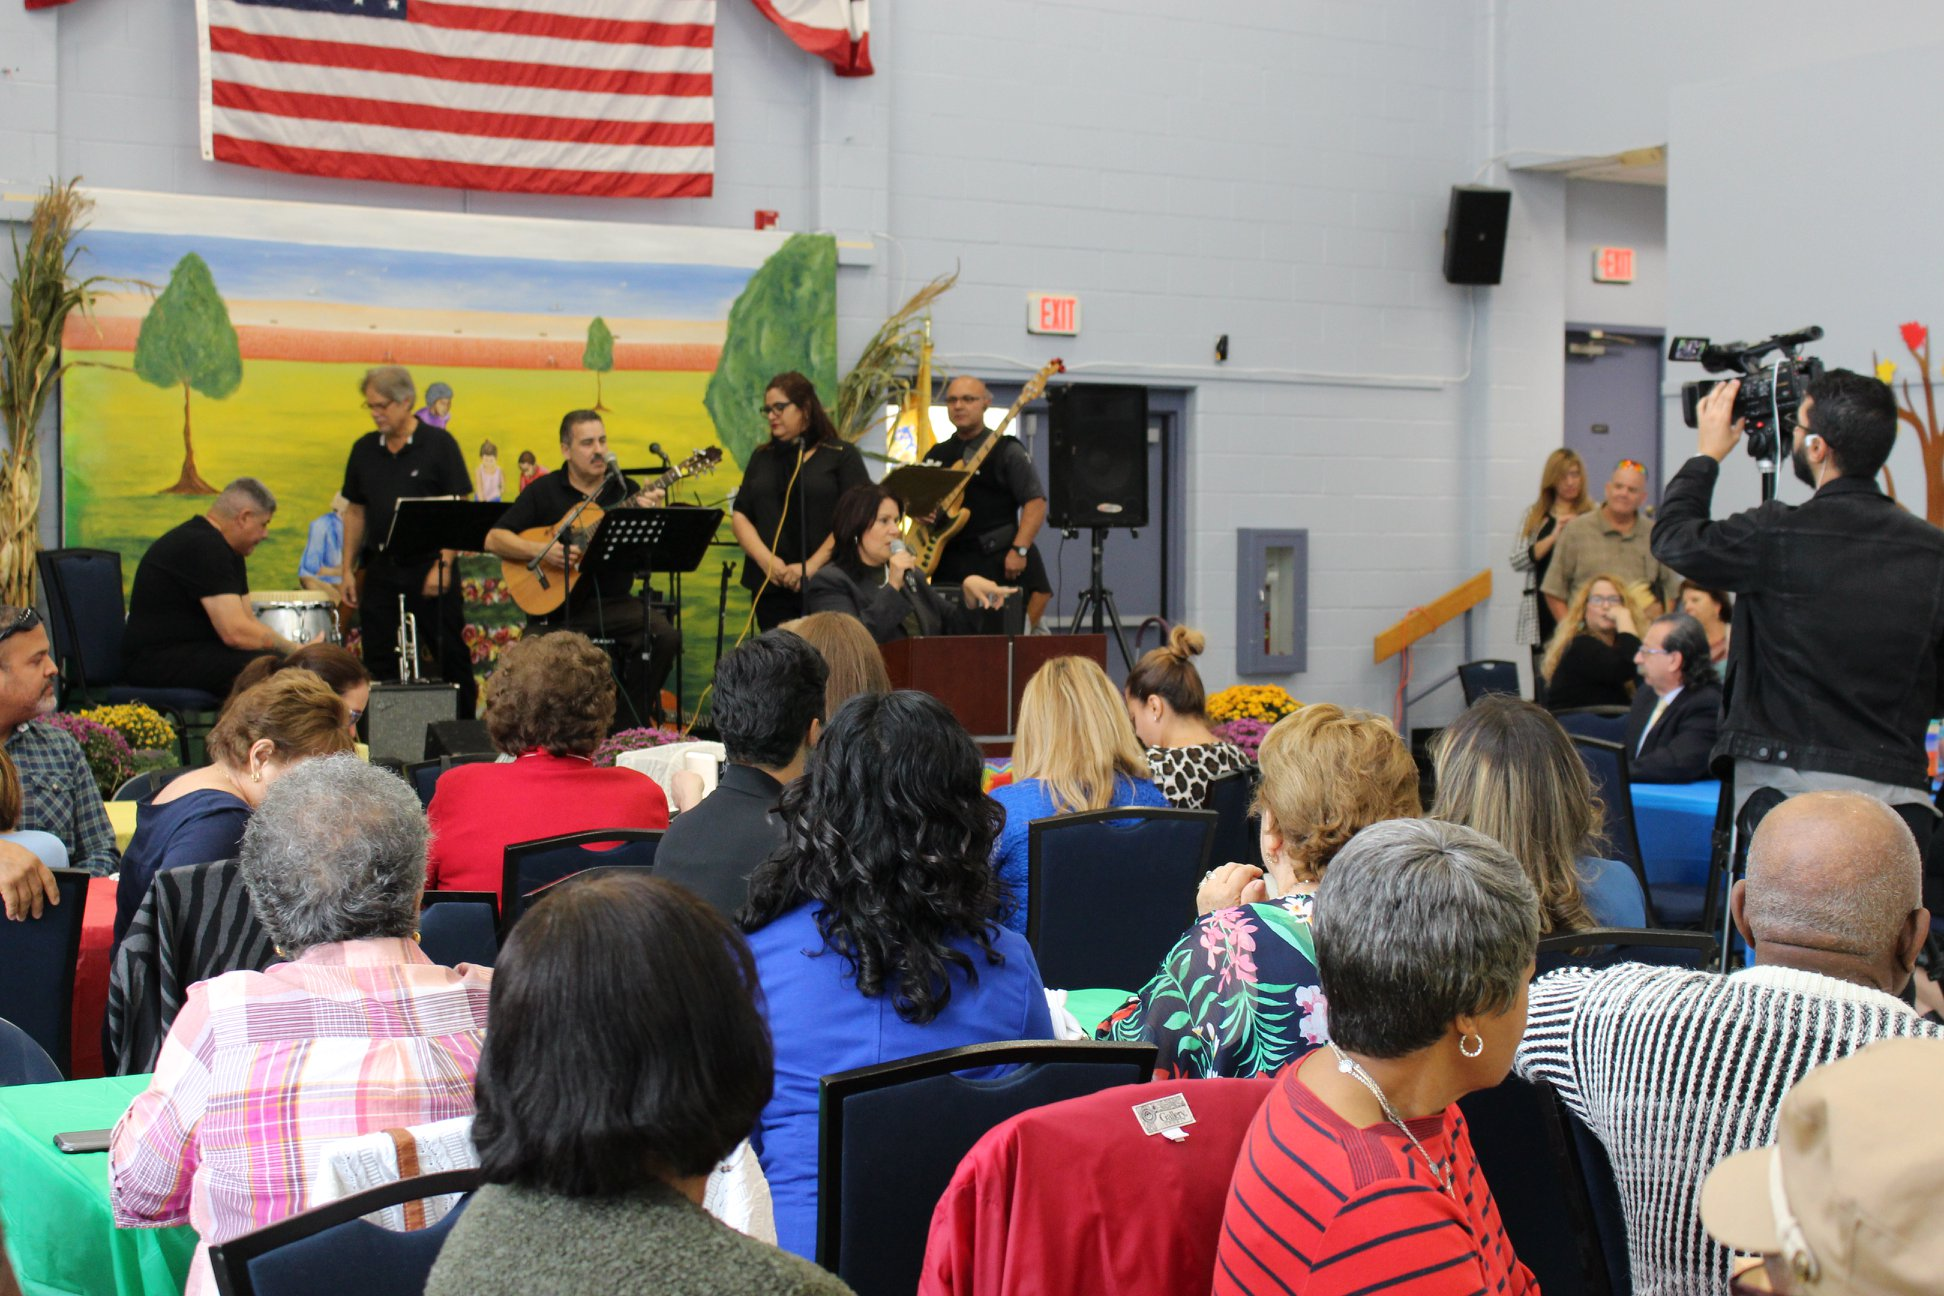 Hispanic Heritage Month Celebration hosted at the Community Center; students, senior citizens, and community members were all present for the celebration.